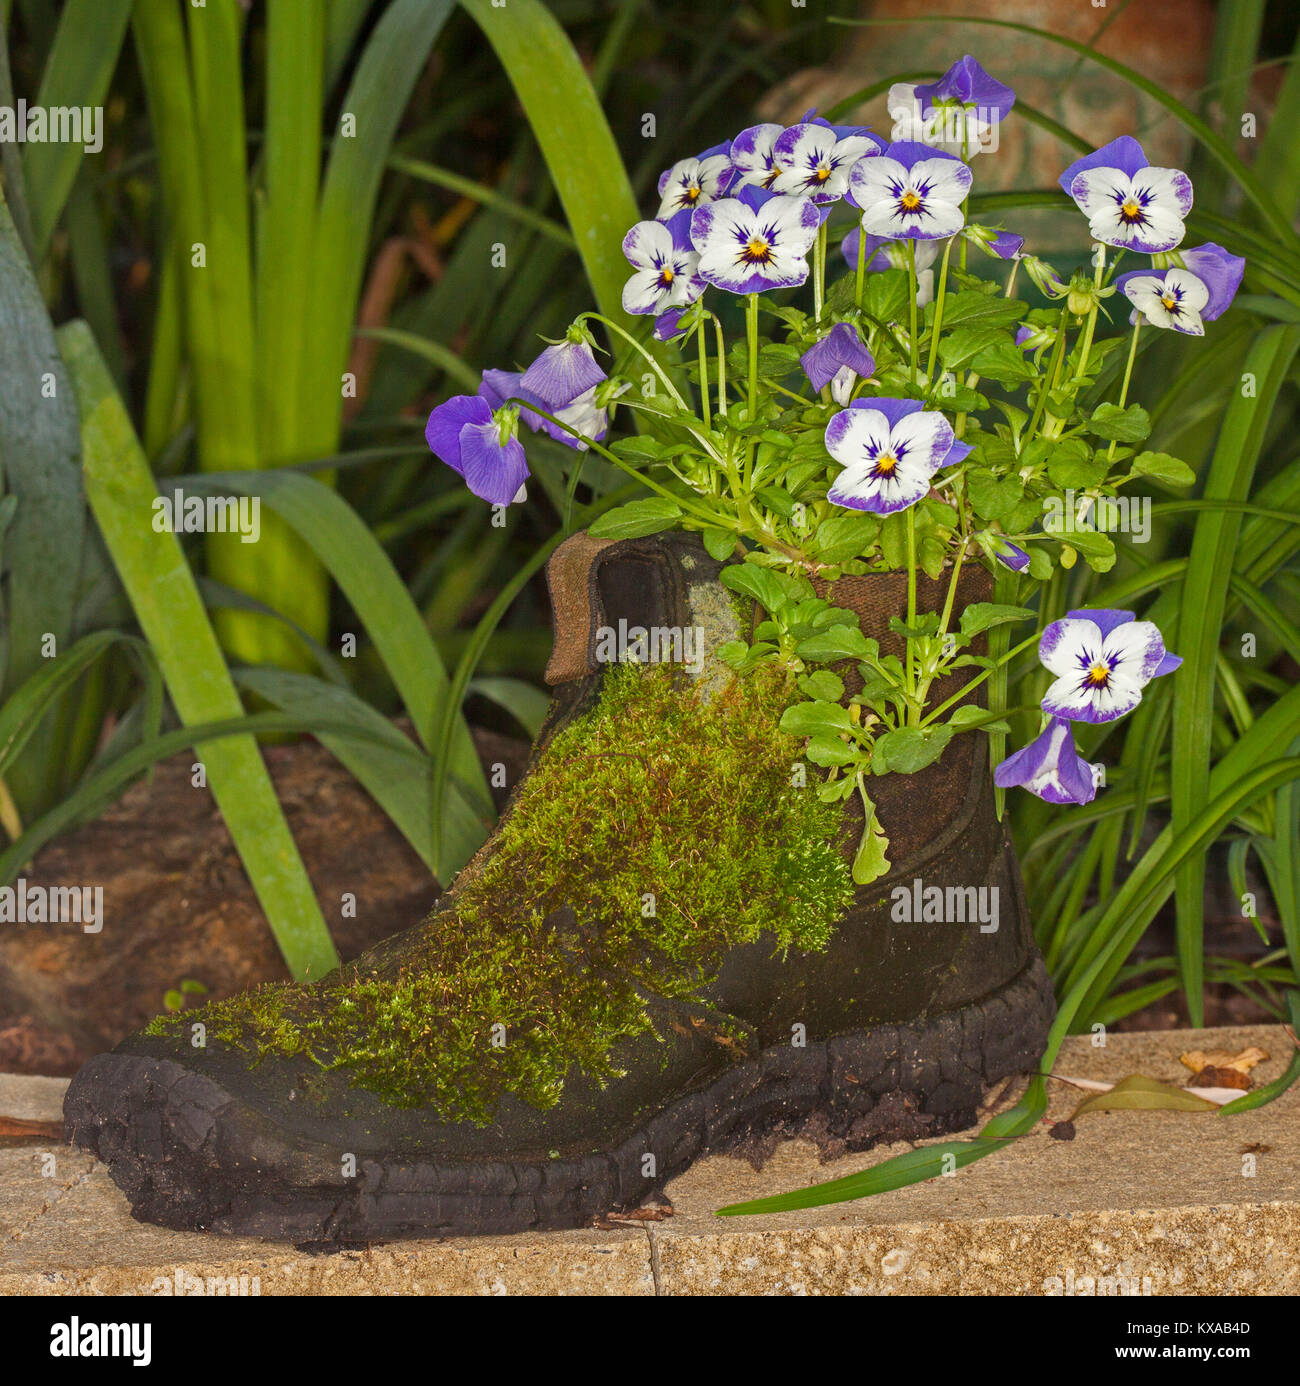 Container gardening with cluster of mauve and white flowers of stock container gardening with cluster of mauve and white flowers of pansies growing in old recycled boot with coating of green moss mightylinksfo